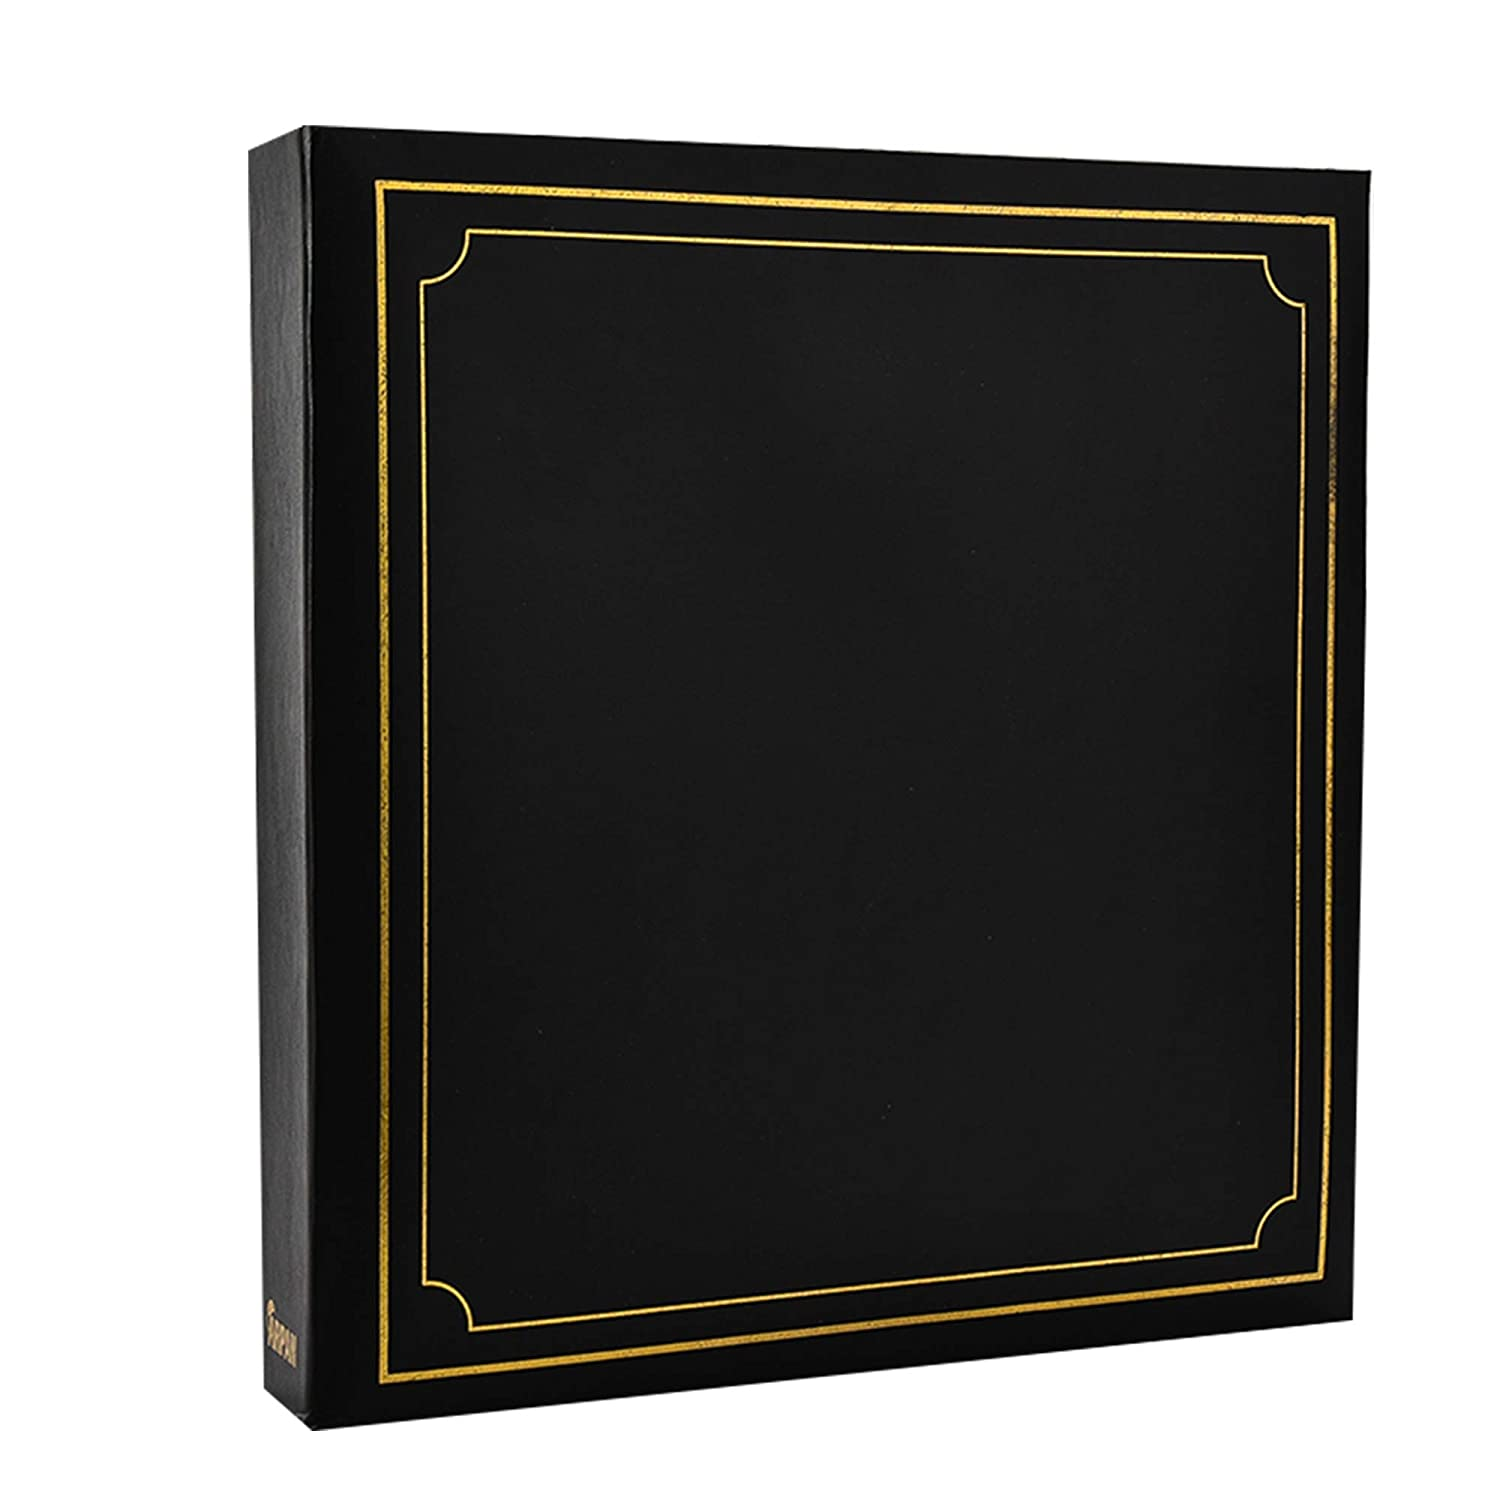 ARPAN Large Slip In Photo Album Holds 500 Photos 6'' x 4'' Gold Stamp Padded Cover Black AL-9174